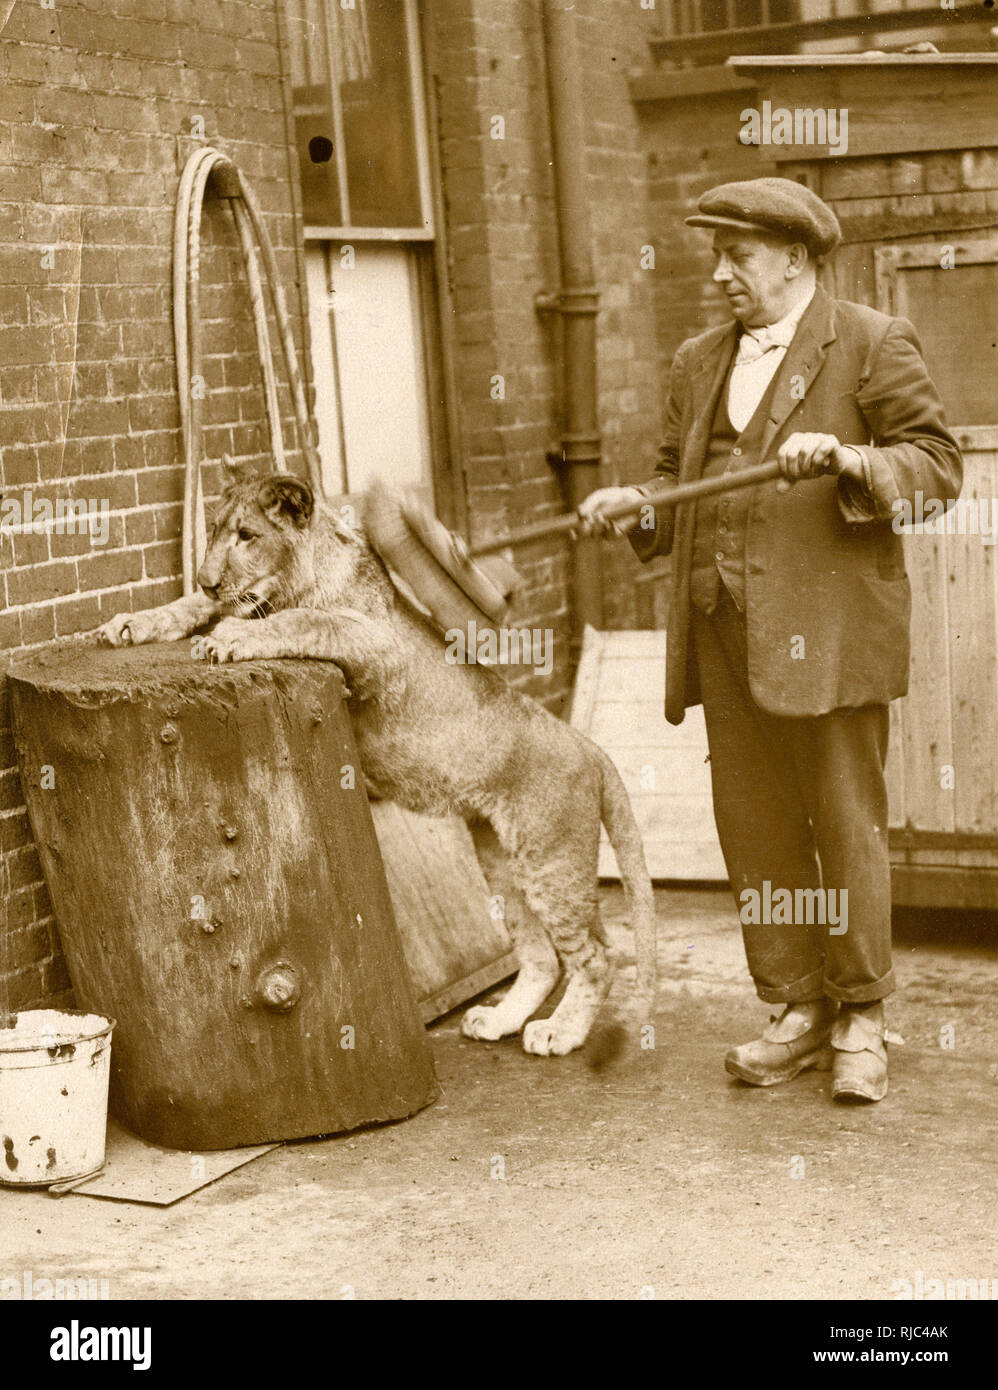 Mary Pickford the young lion cub (!) has her morning wash and brush-down from her keeper - London Zoological Gardens, Regents Park, London. Stock Photo